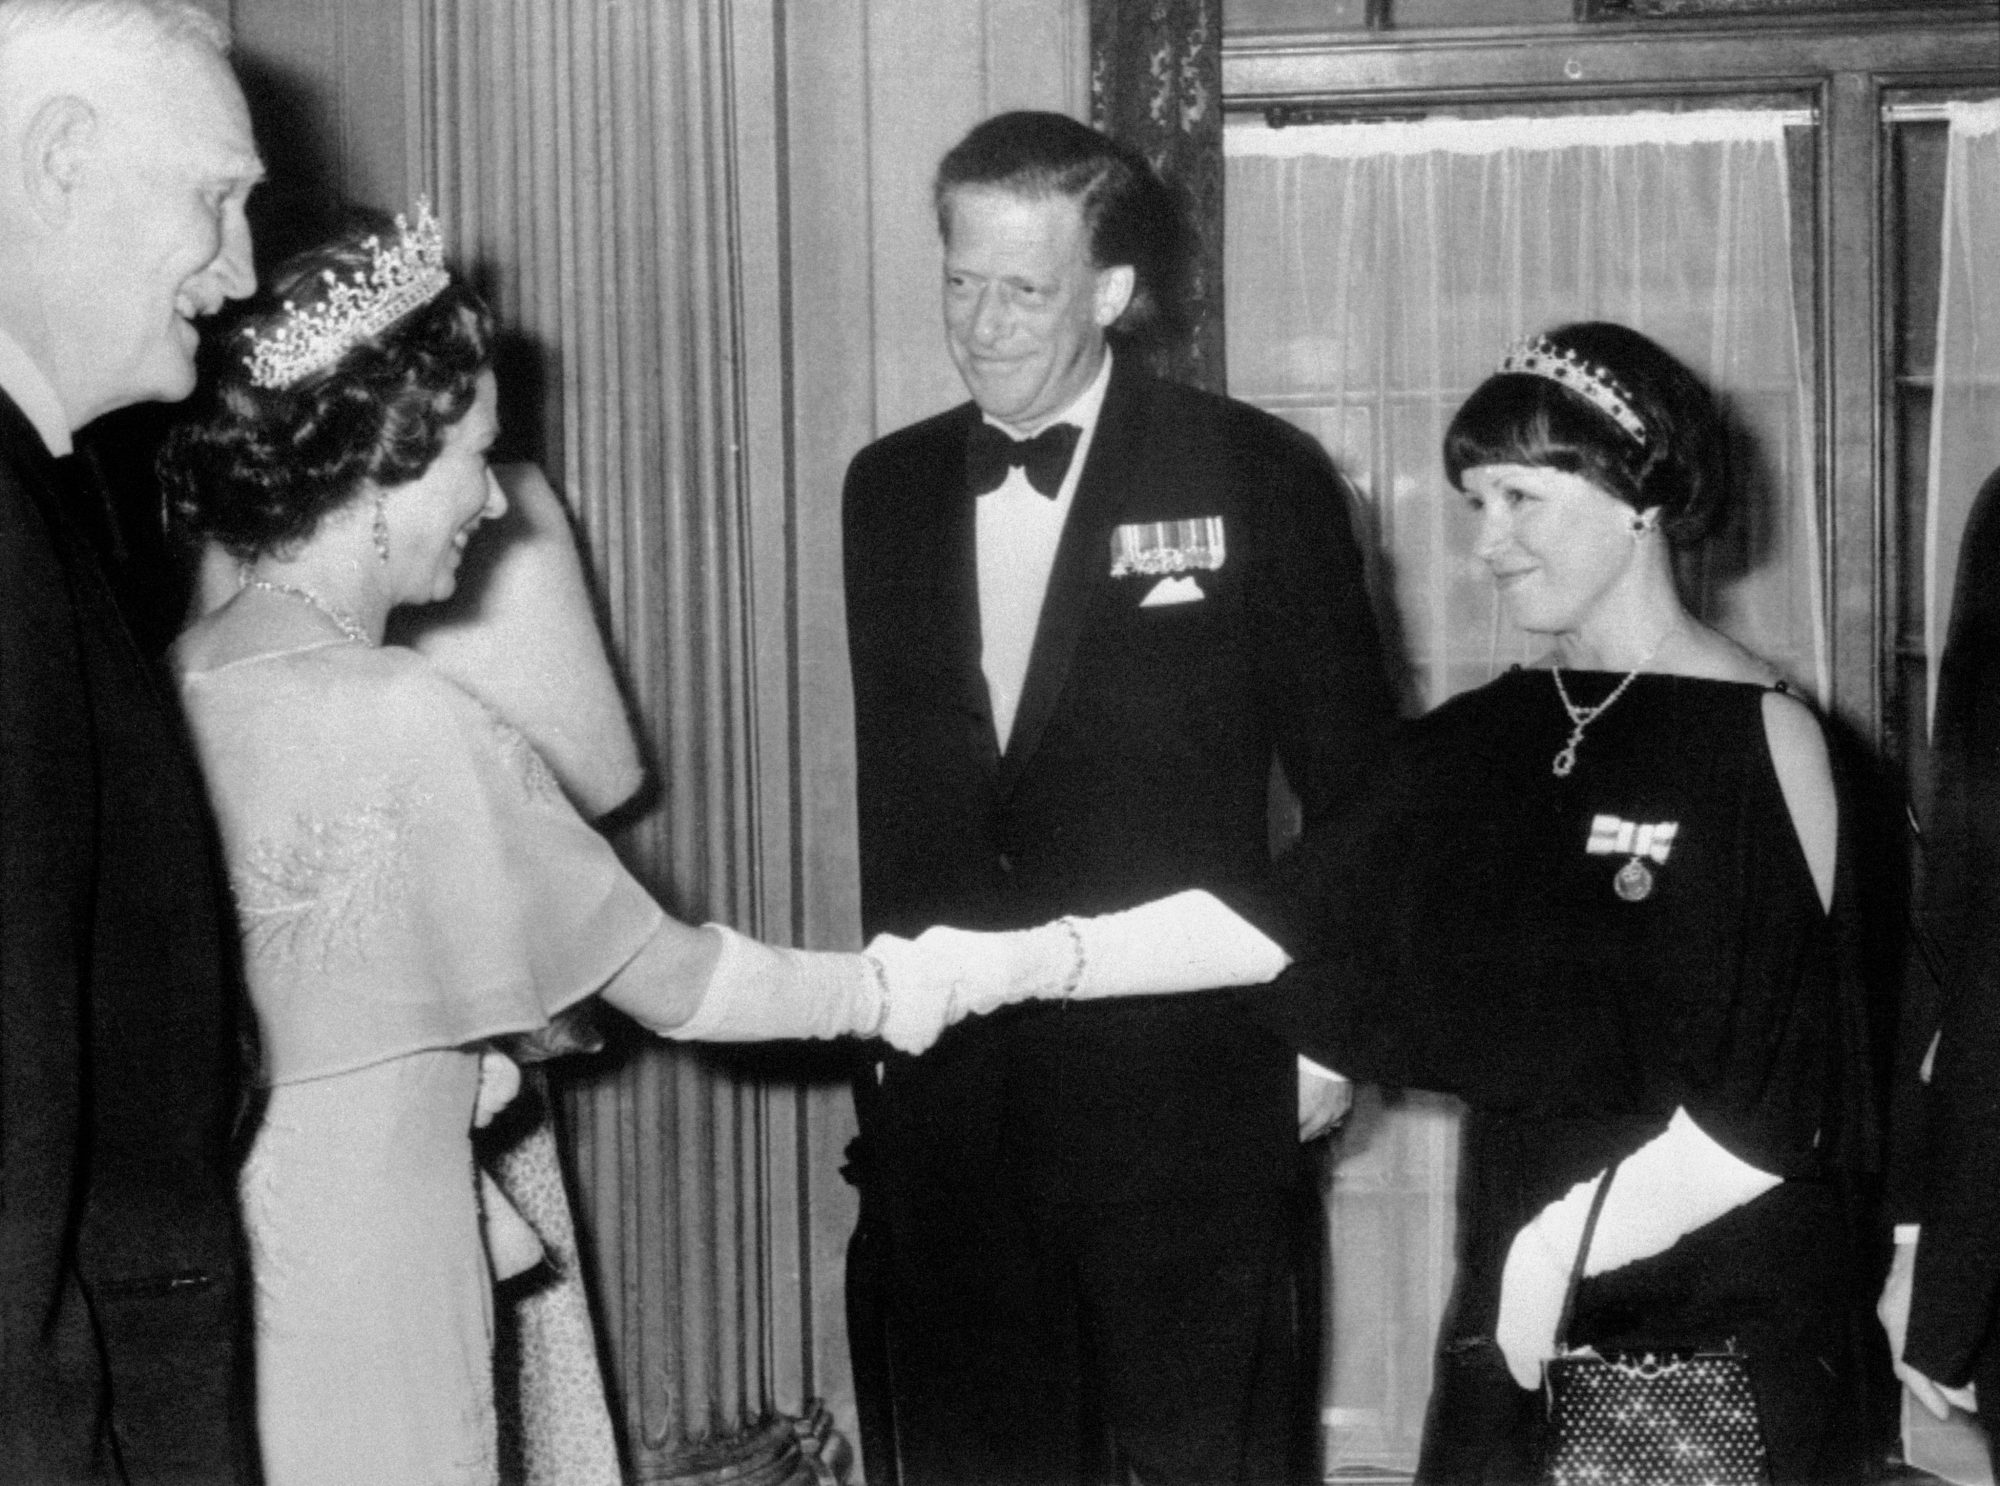 Queen Elizabeth II meets her cousin The Earl of Harewood and the Countess of Harewood